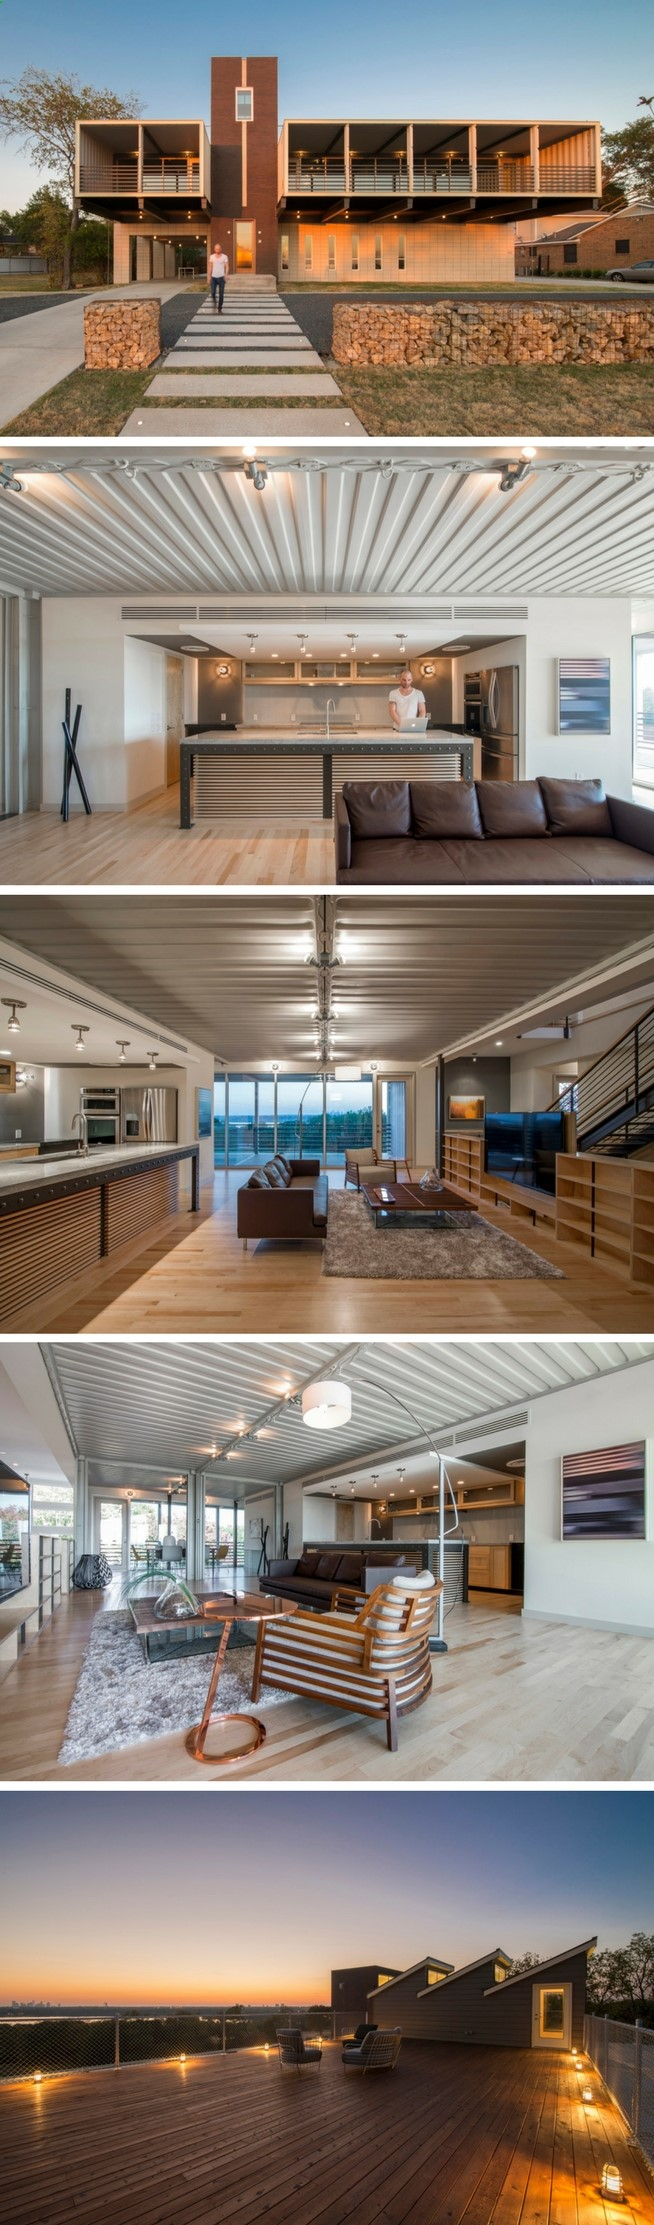 Container house pv shipping container house who else wants